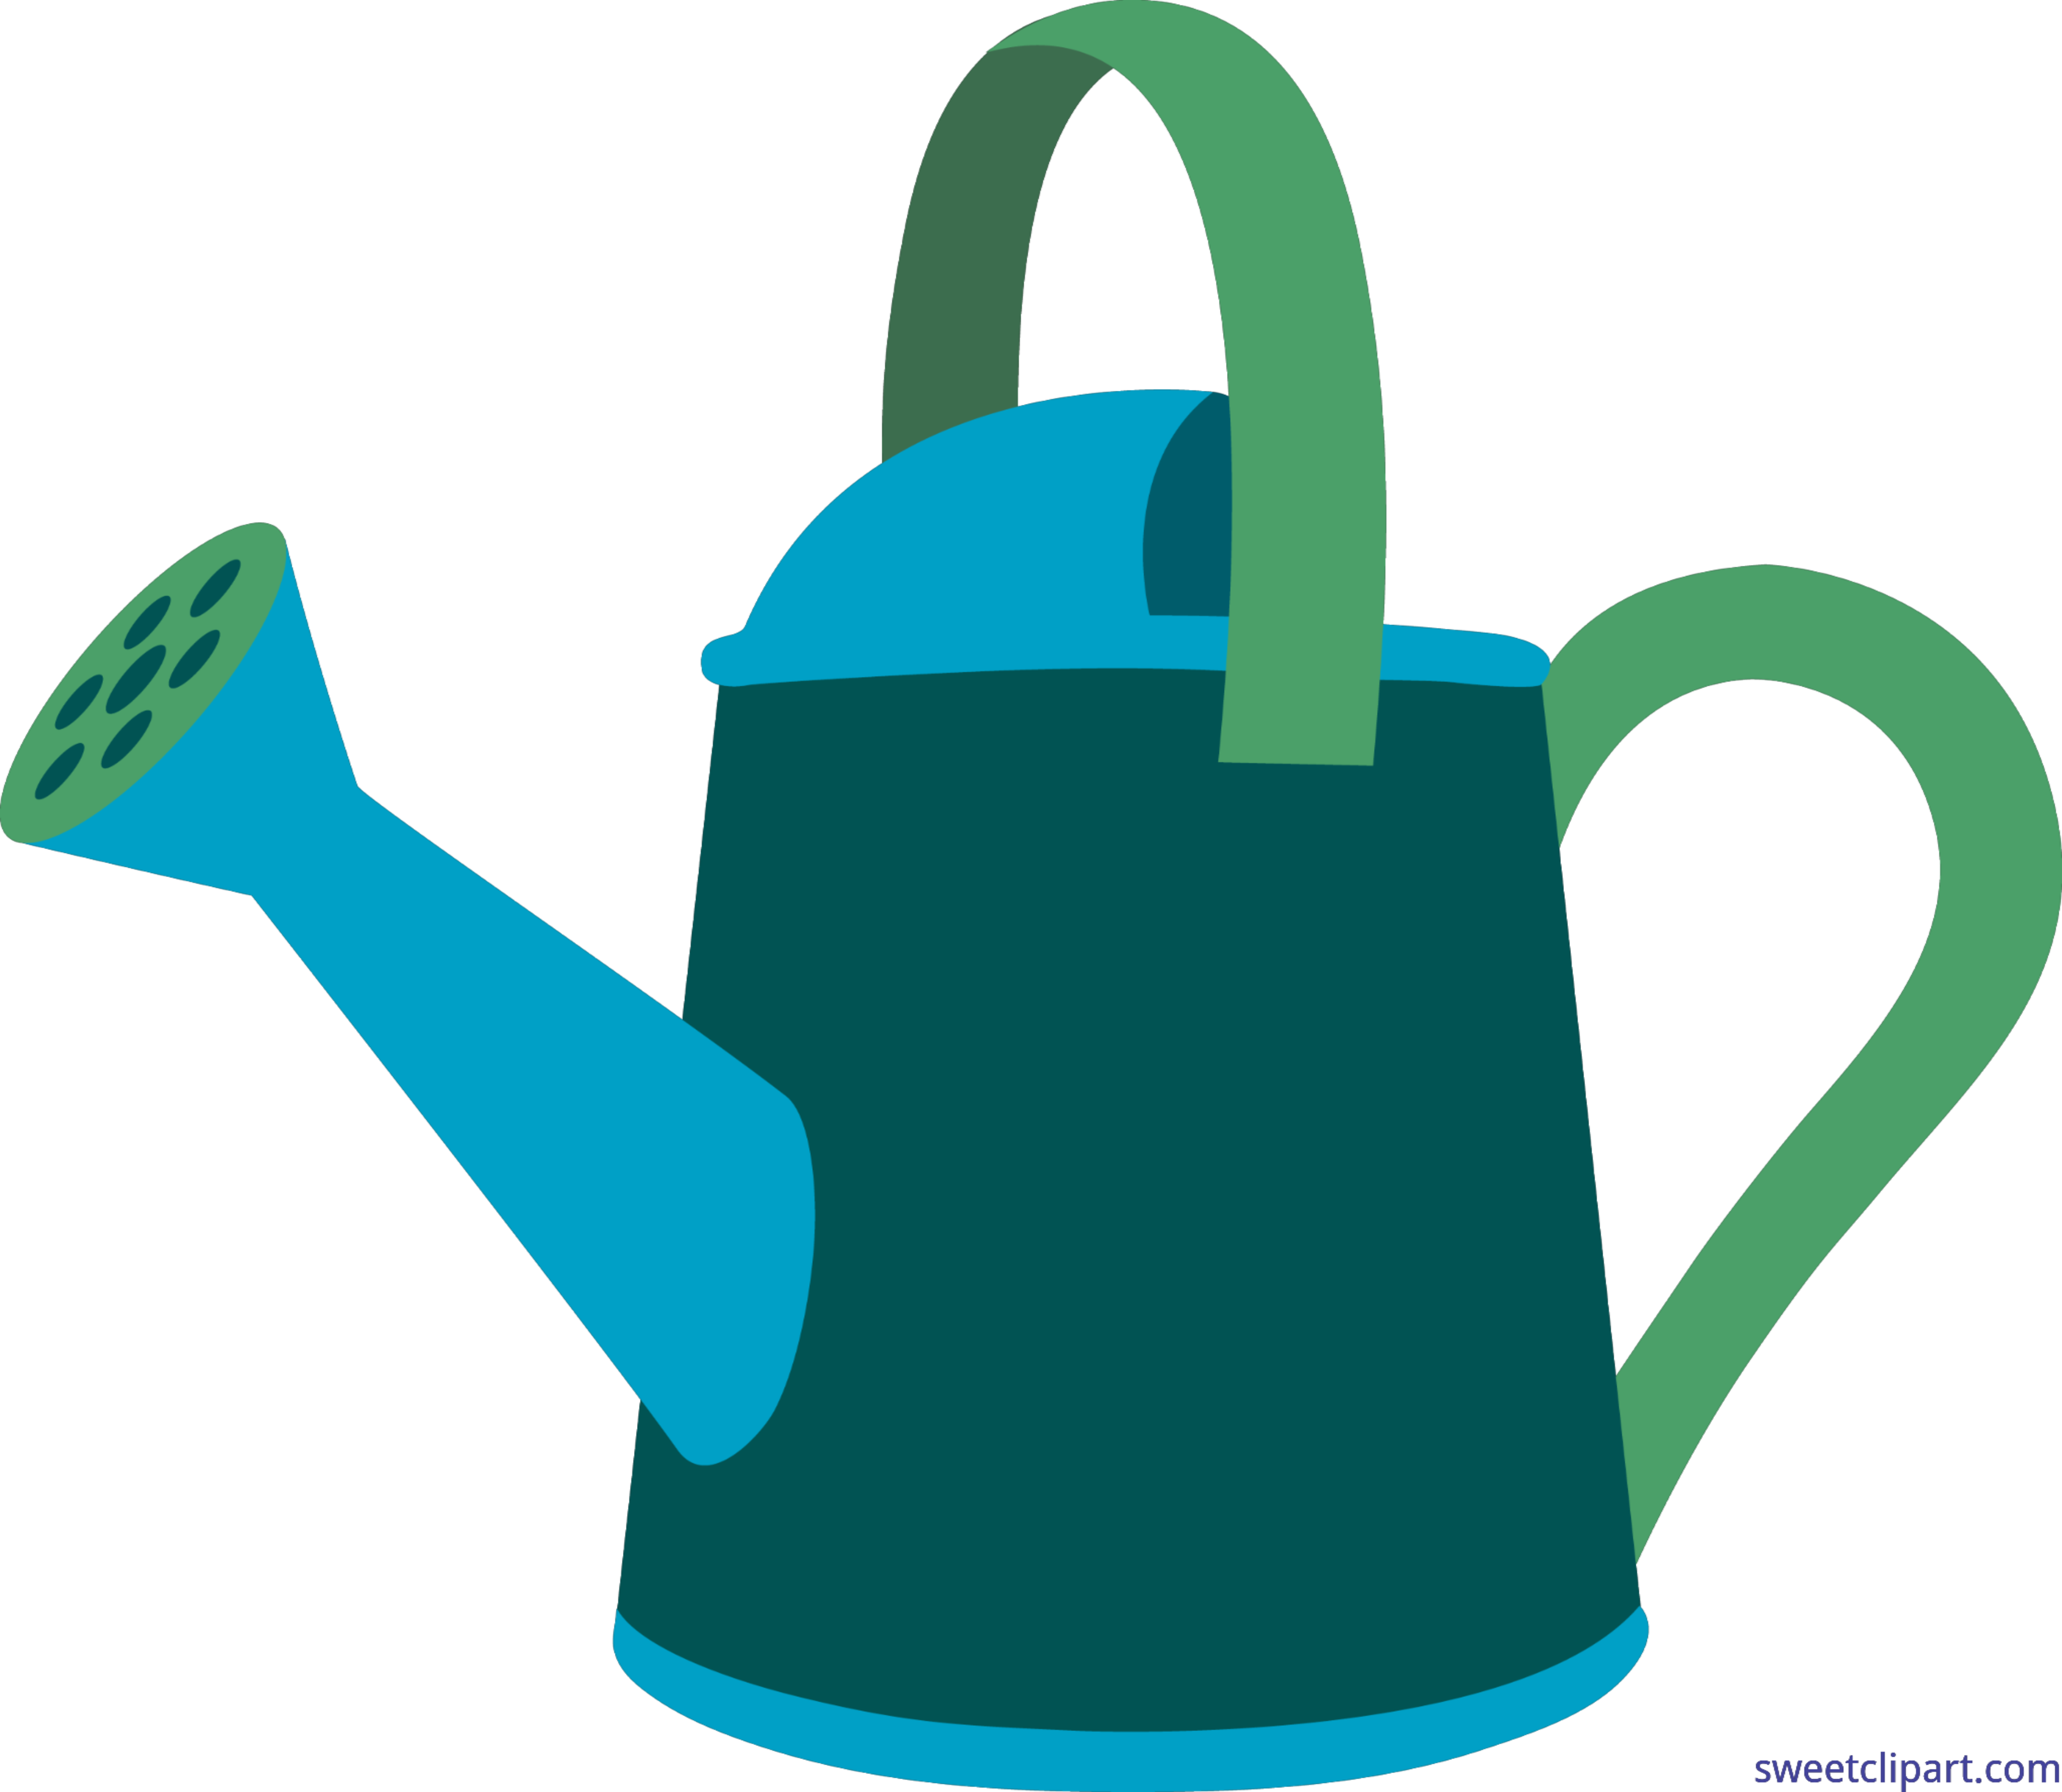 garden watering can 2 clip art - Garden Watering Can